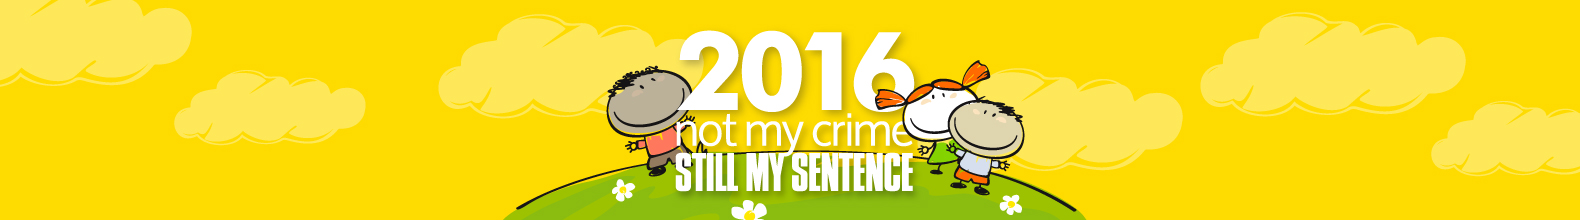 Not Your Crime, Still My Sentence 2016